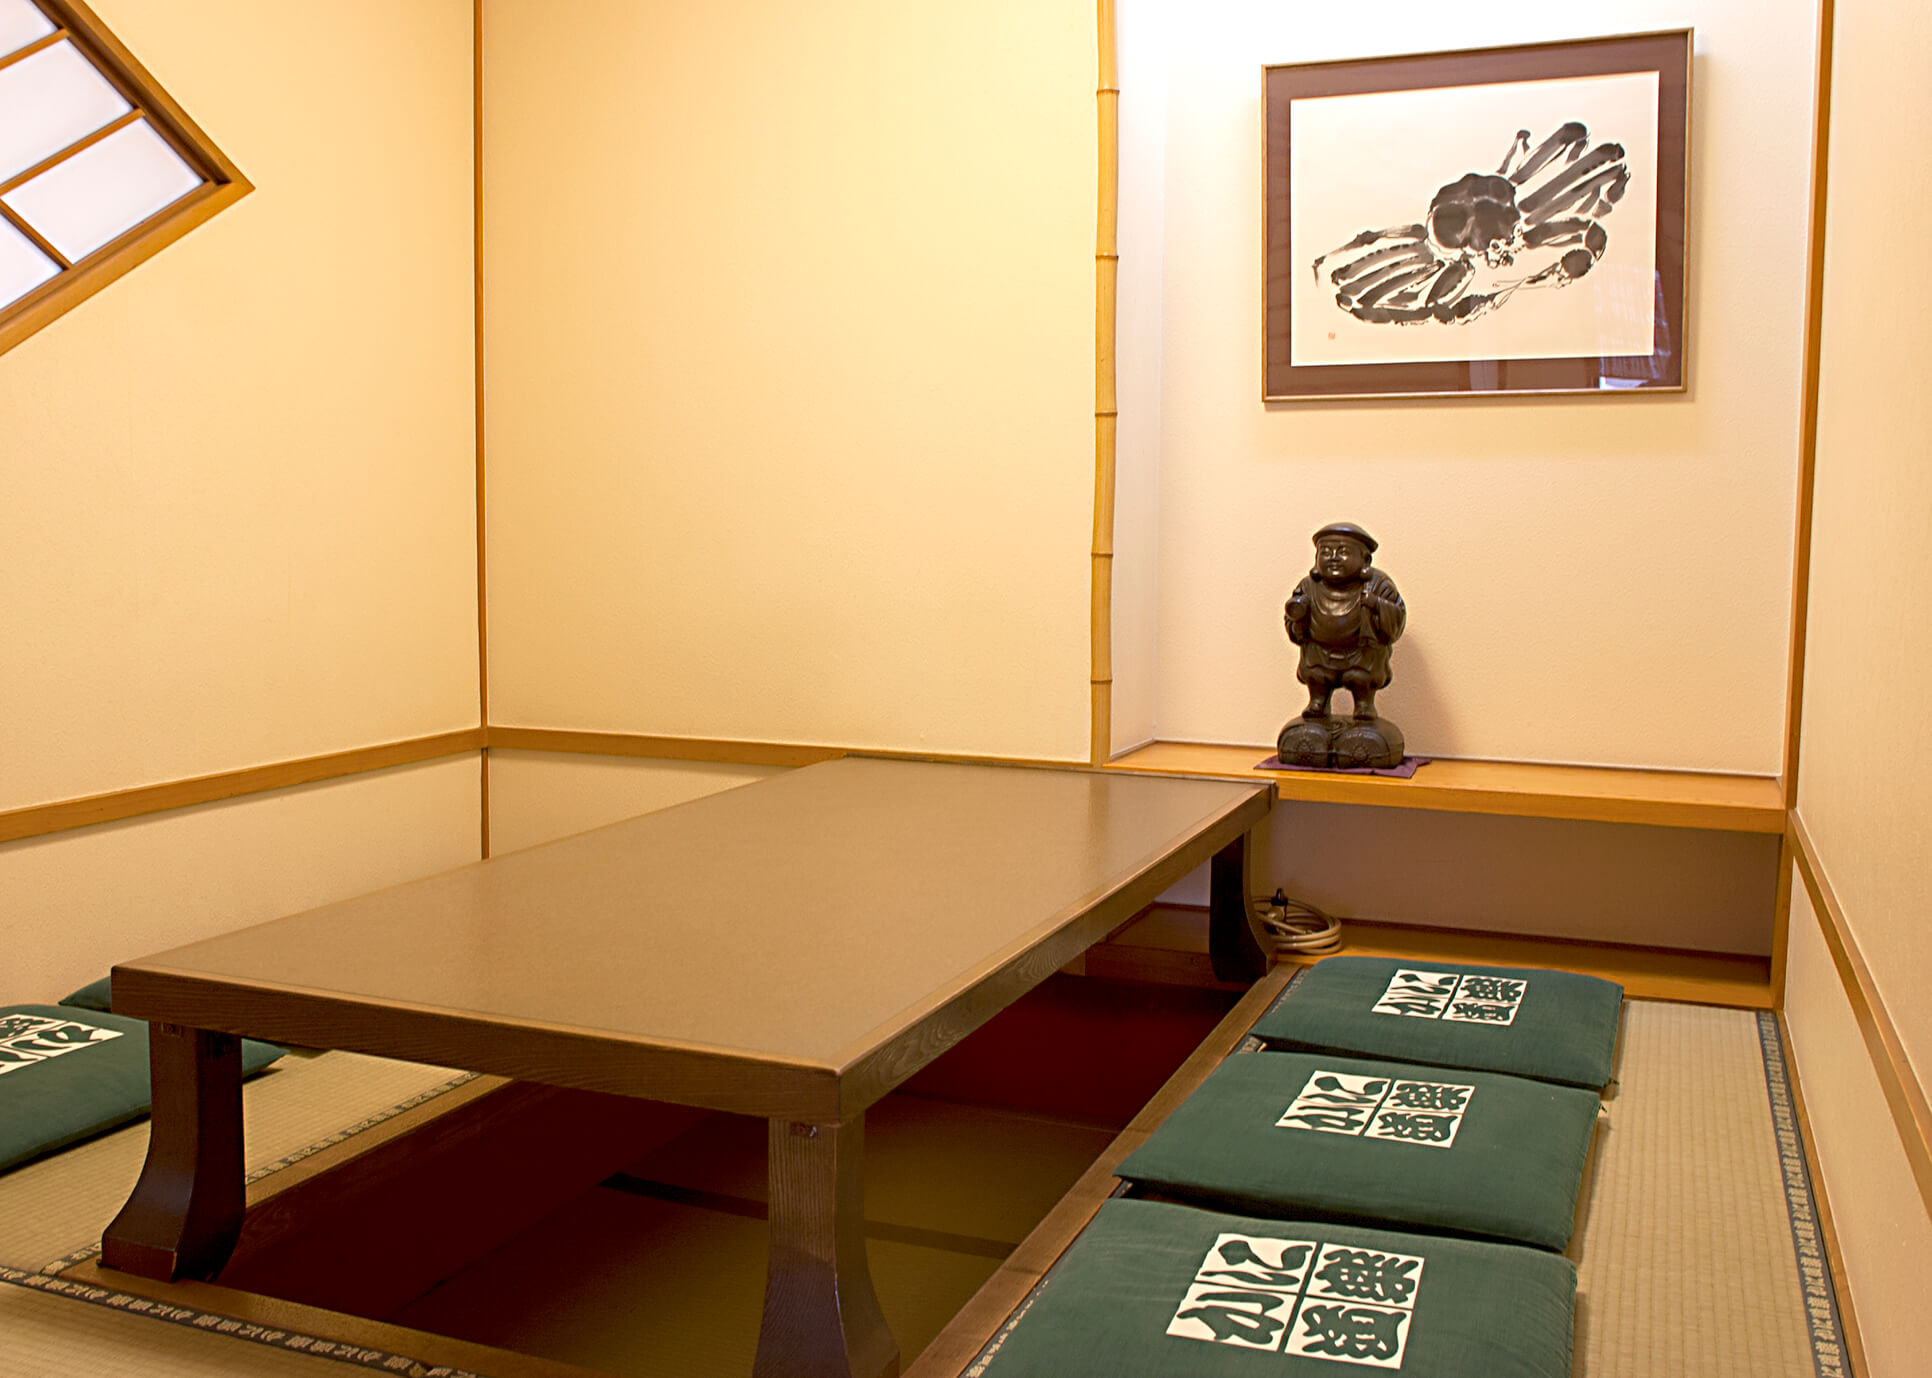 Room (dig seat) of Dotombori higashimise(East) branch introspectiveness - big things and small things